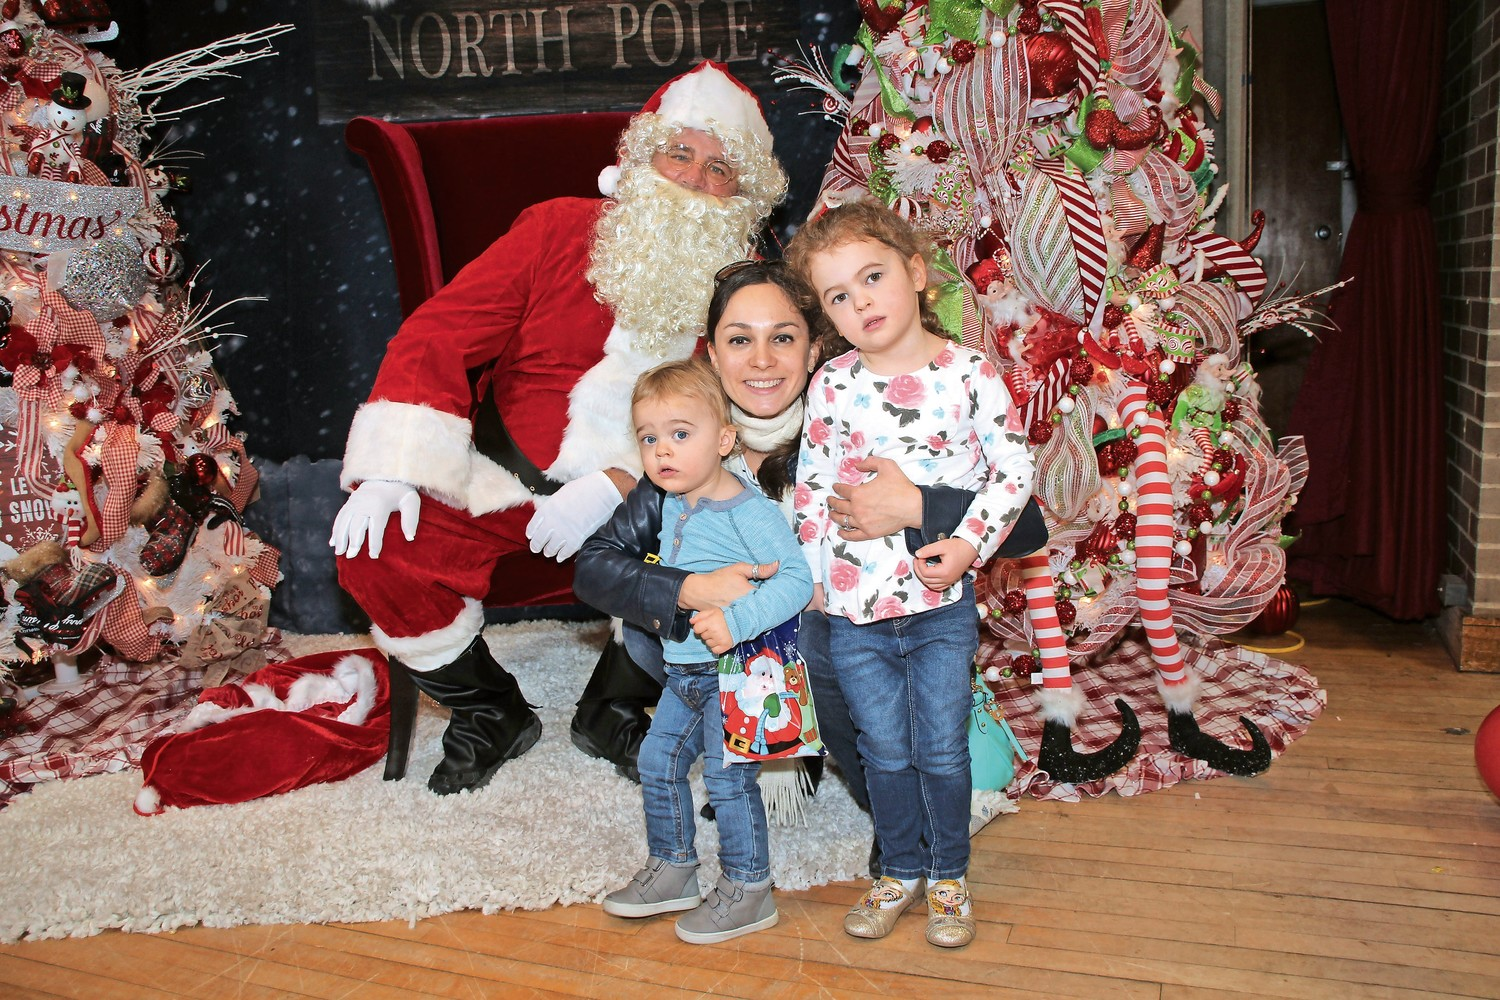 Jennifer Holohan and her children Scarlet, 4, and Christian, 2, met Santa at the fair.